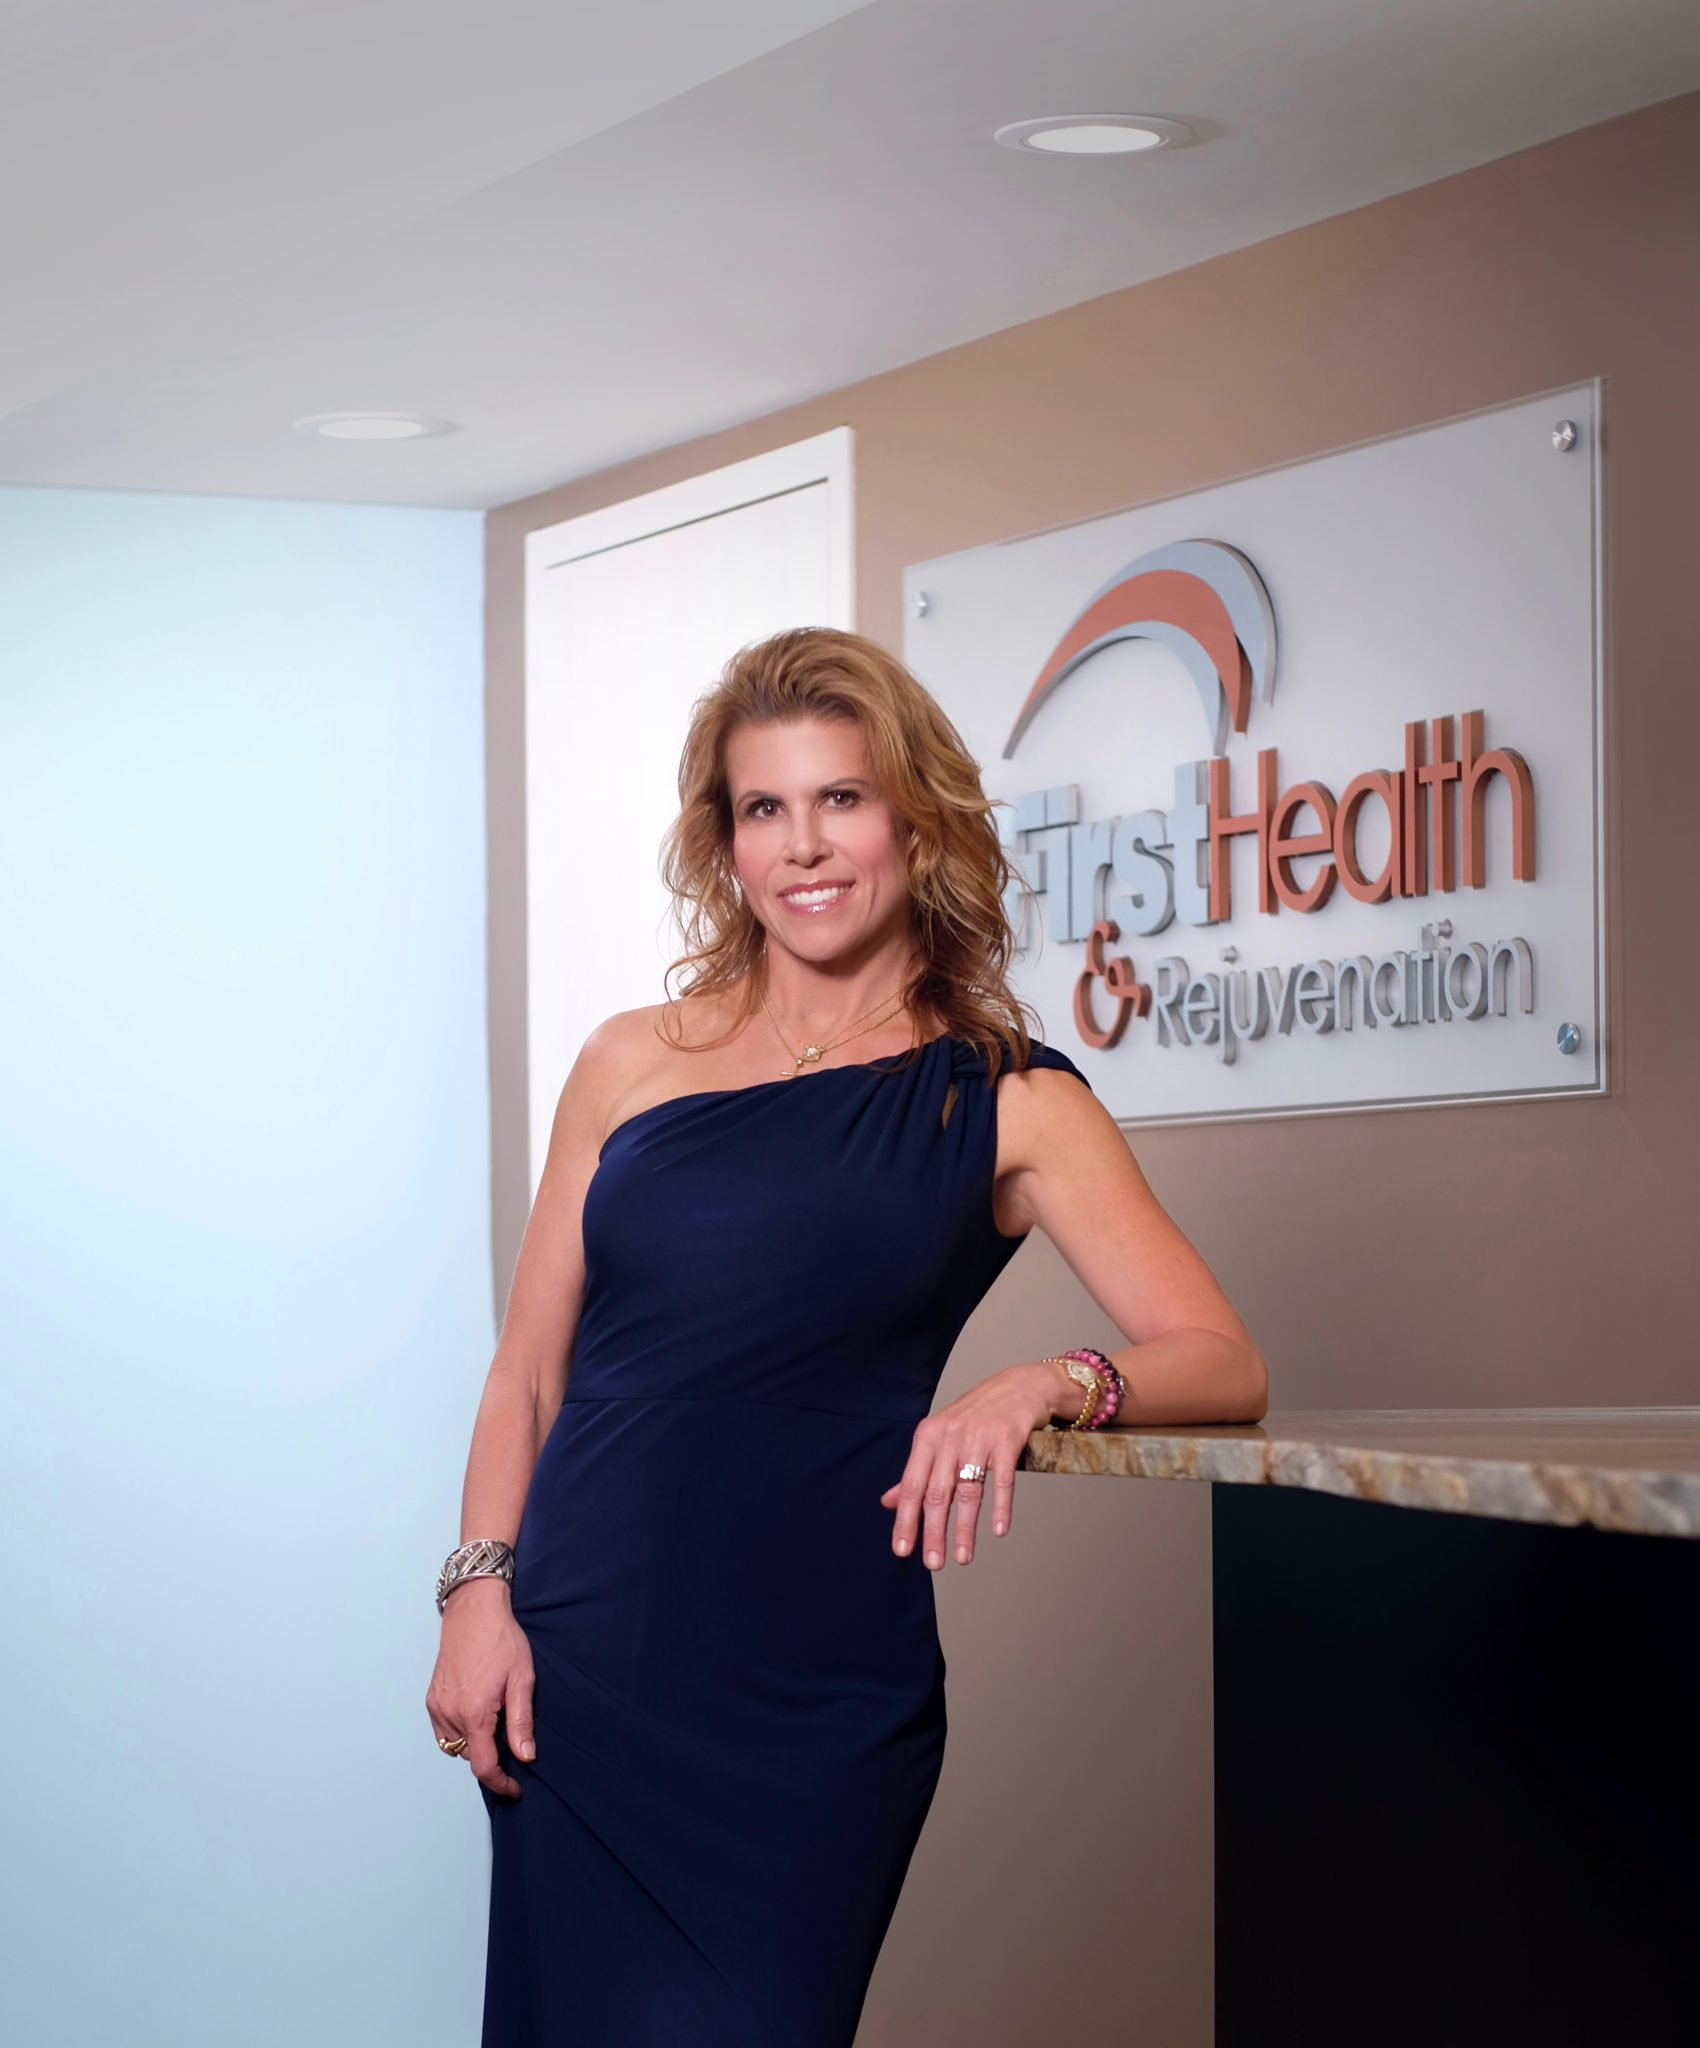 Dr. Anne Lord-Tomas at U First Health & Rejuvenation